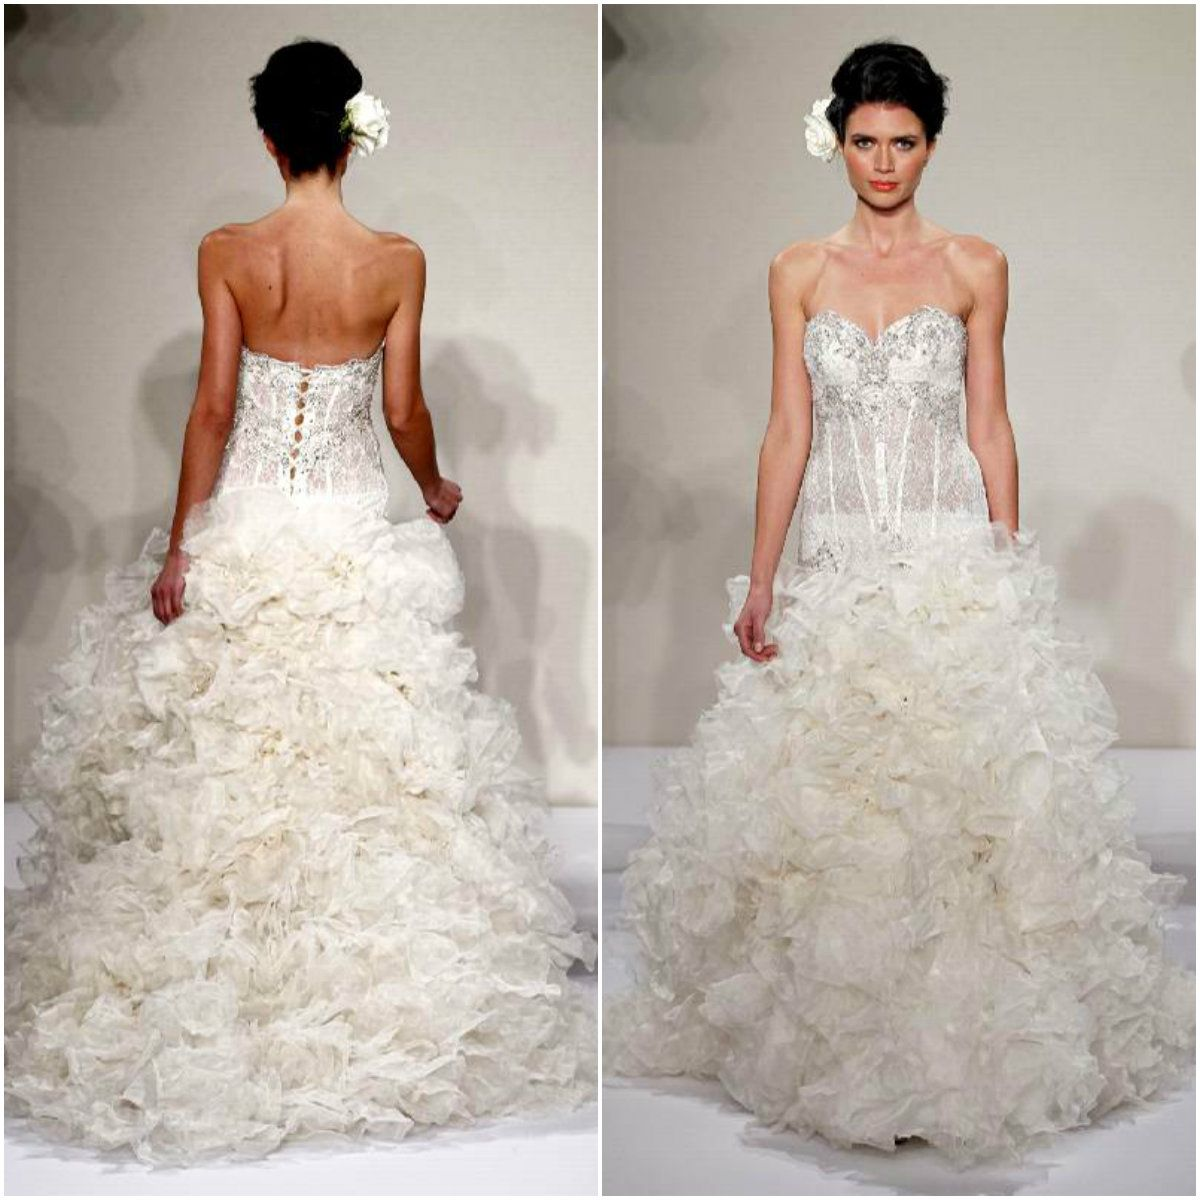 2013 Pnina Tornai Wedding Dress